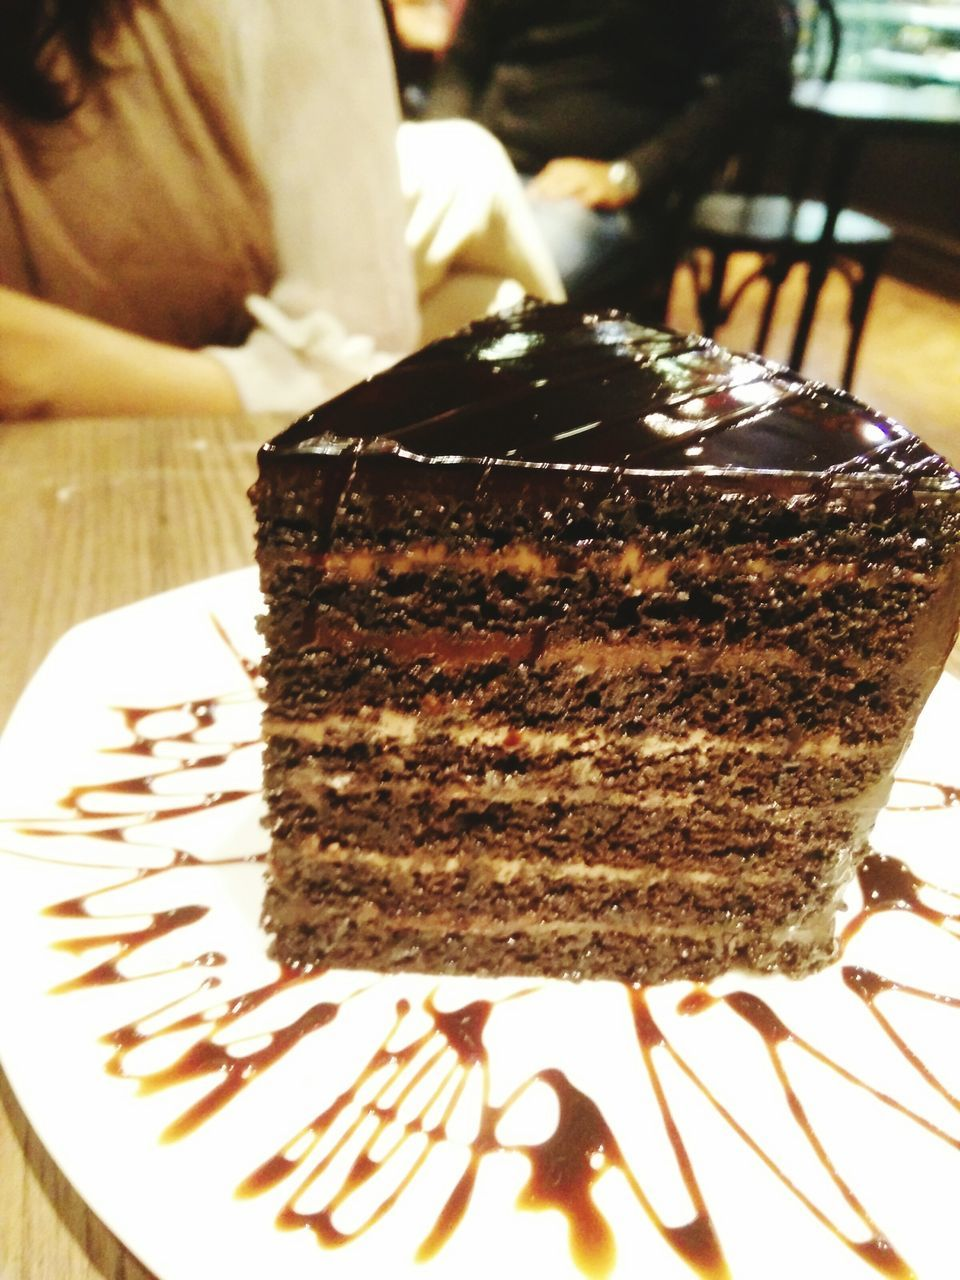 cake, sweet food, food and drink, indulgence, chocolate, dessert, food, temptation, chocolate cake, close-up, freshness, indoors, unhealthy eating, plate, ready-to-eat, human hand, human body part, day, people